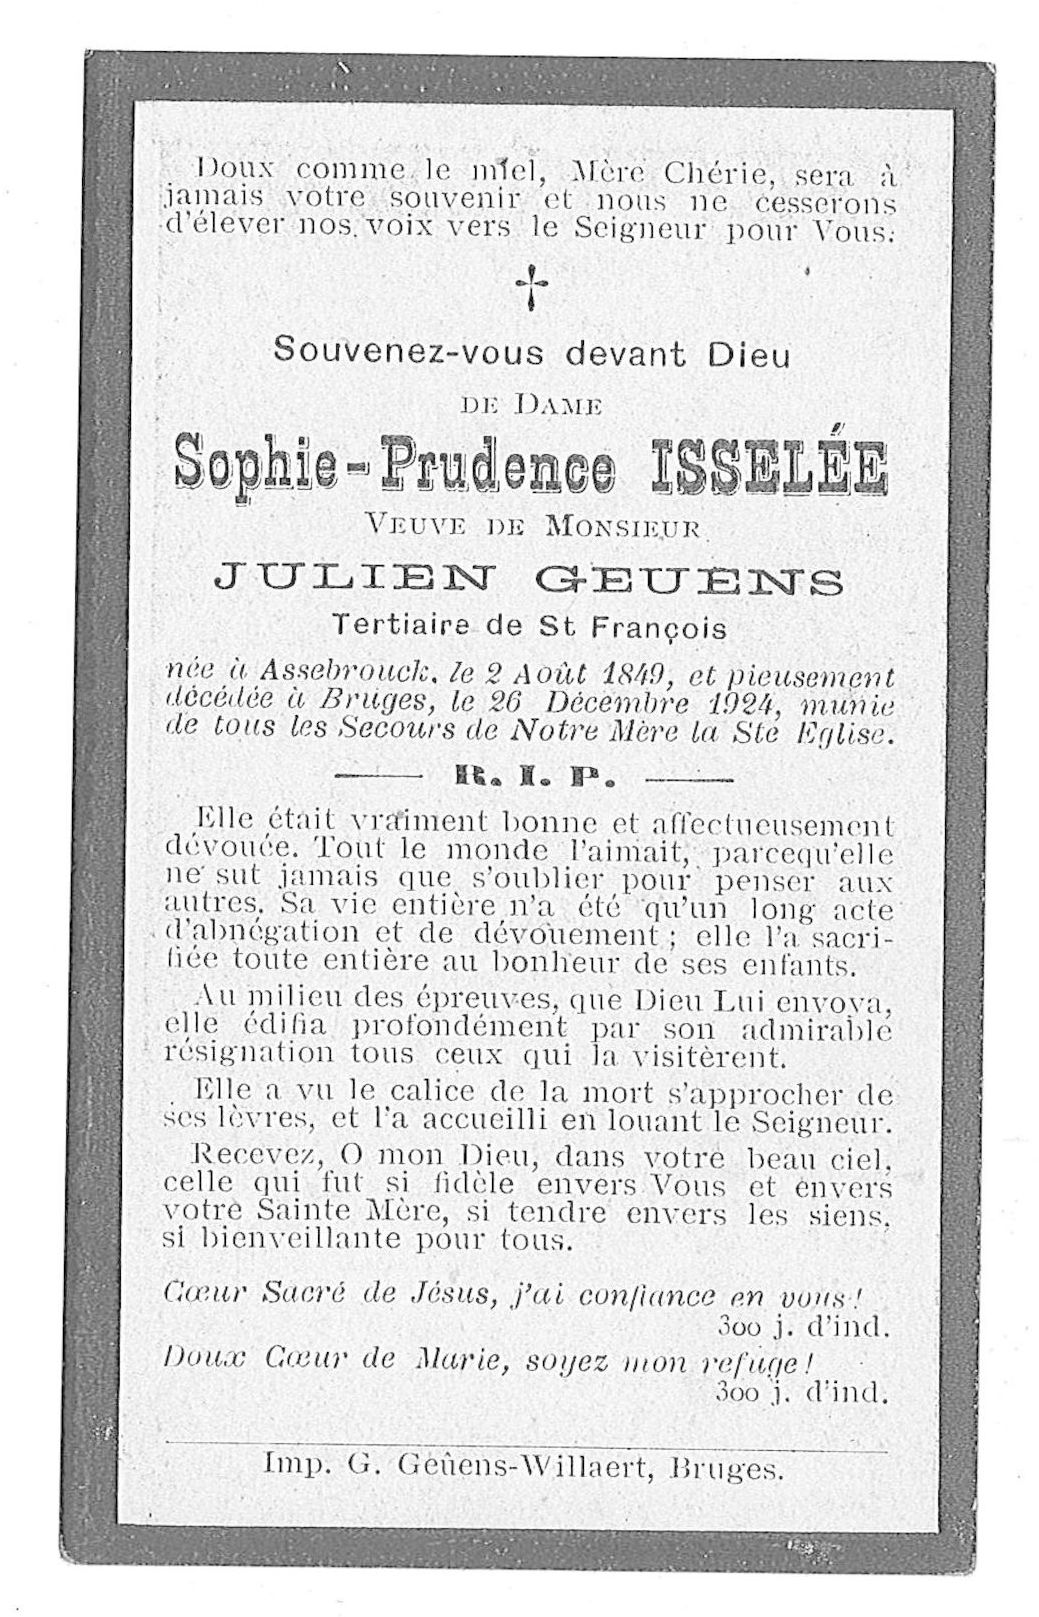 Sophie-Prudence Isselée